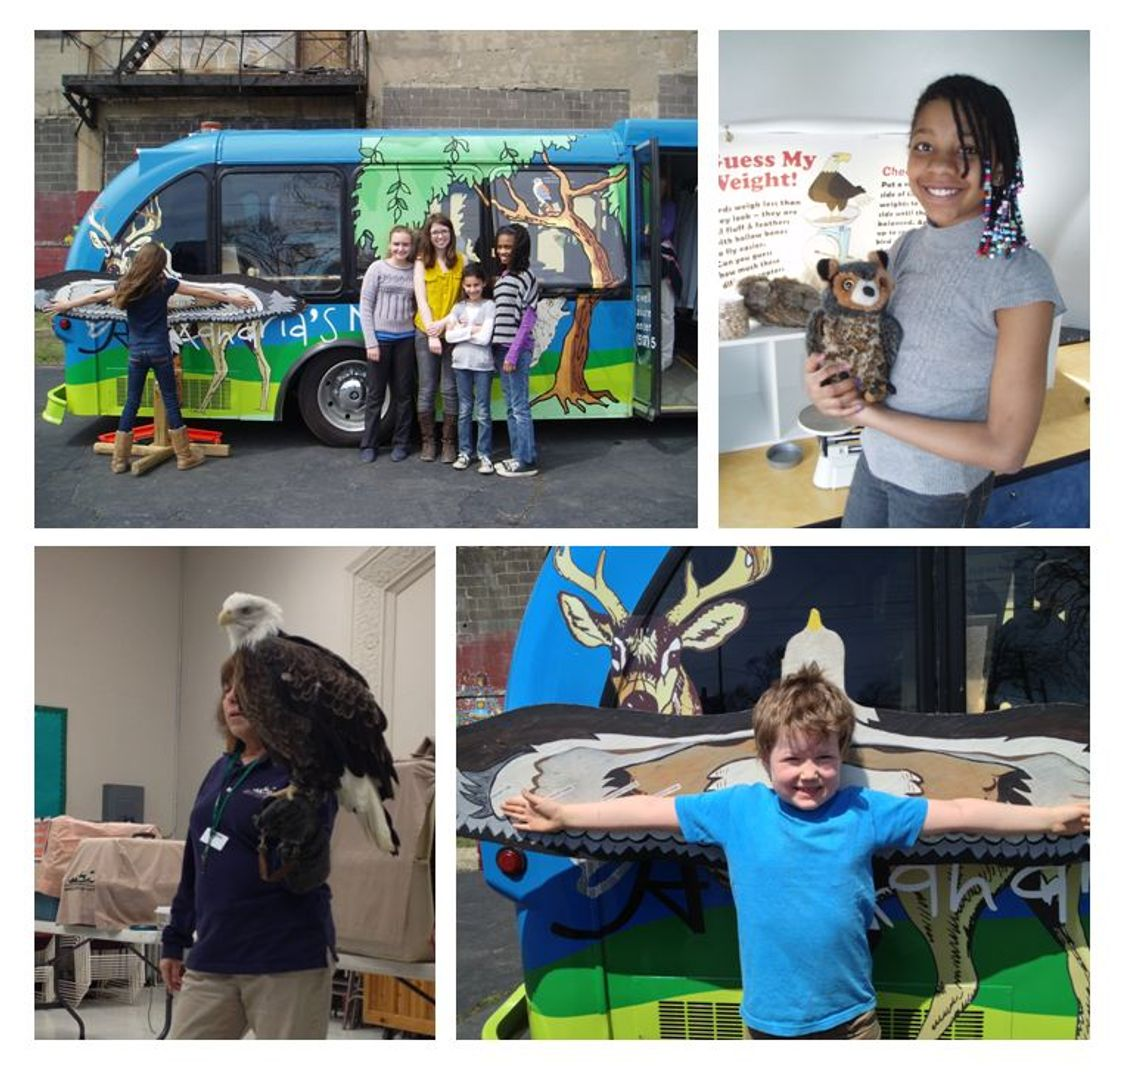 Charlotte Mason Community School Photo - The Spirit of Alexandria Foundation generously funded the Nature Bus to come to CMCS and teach the students about birds and nature!